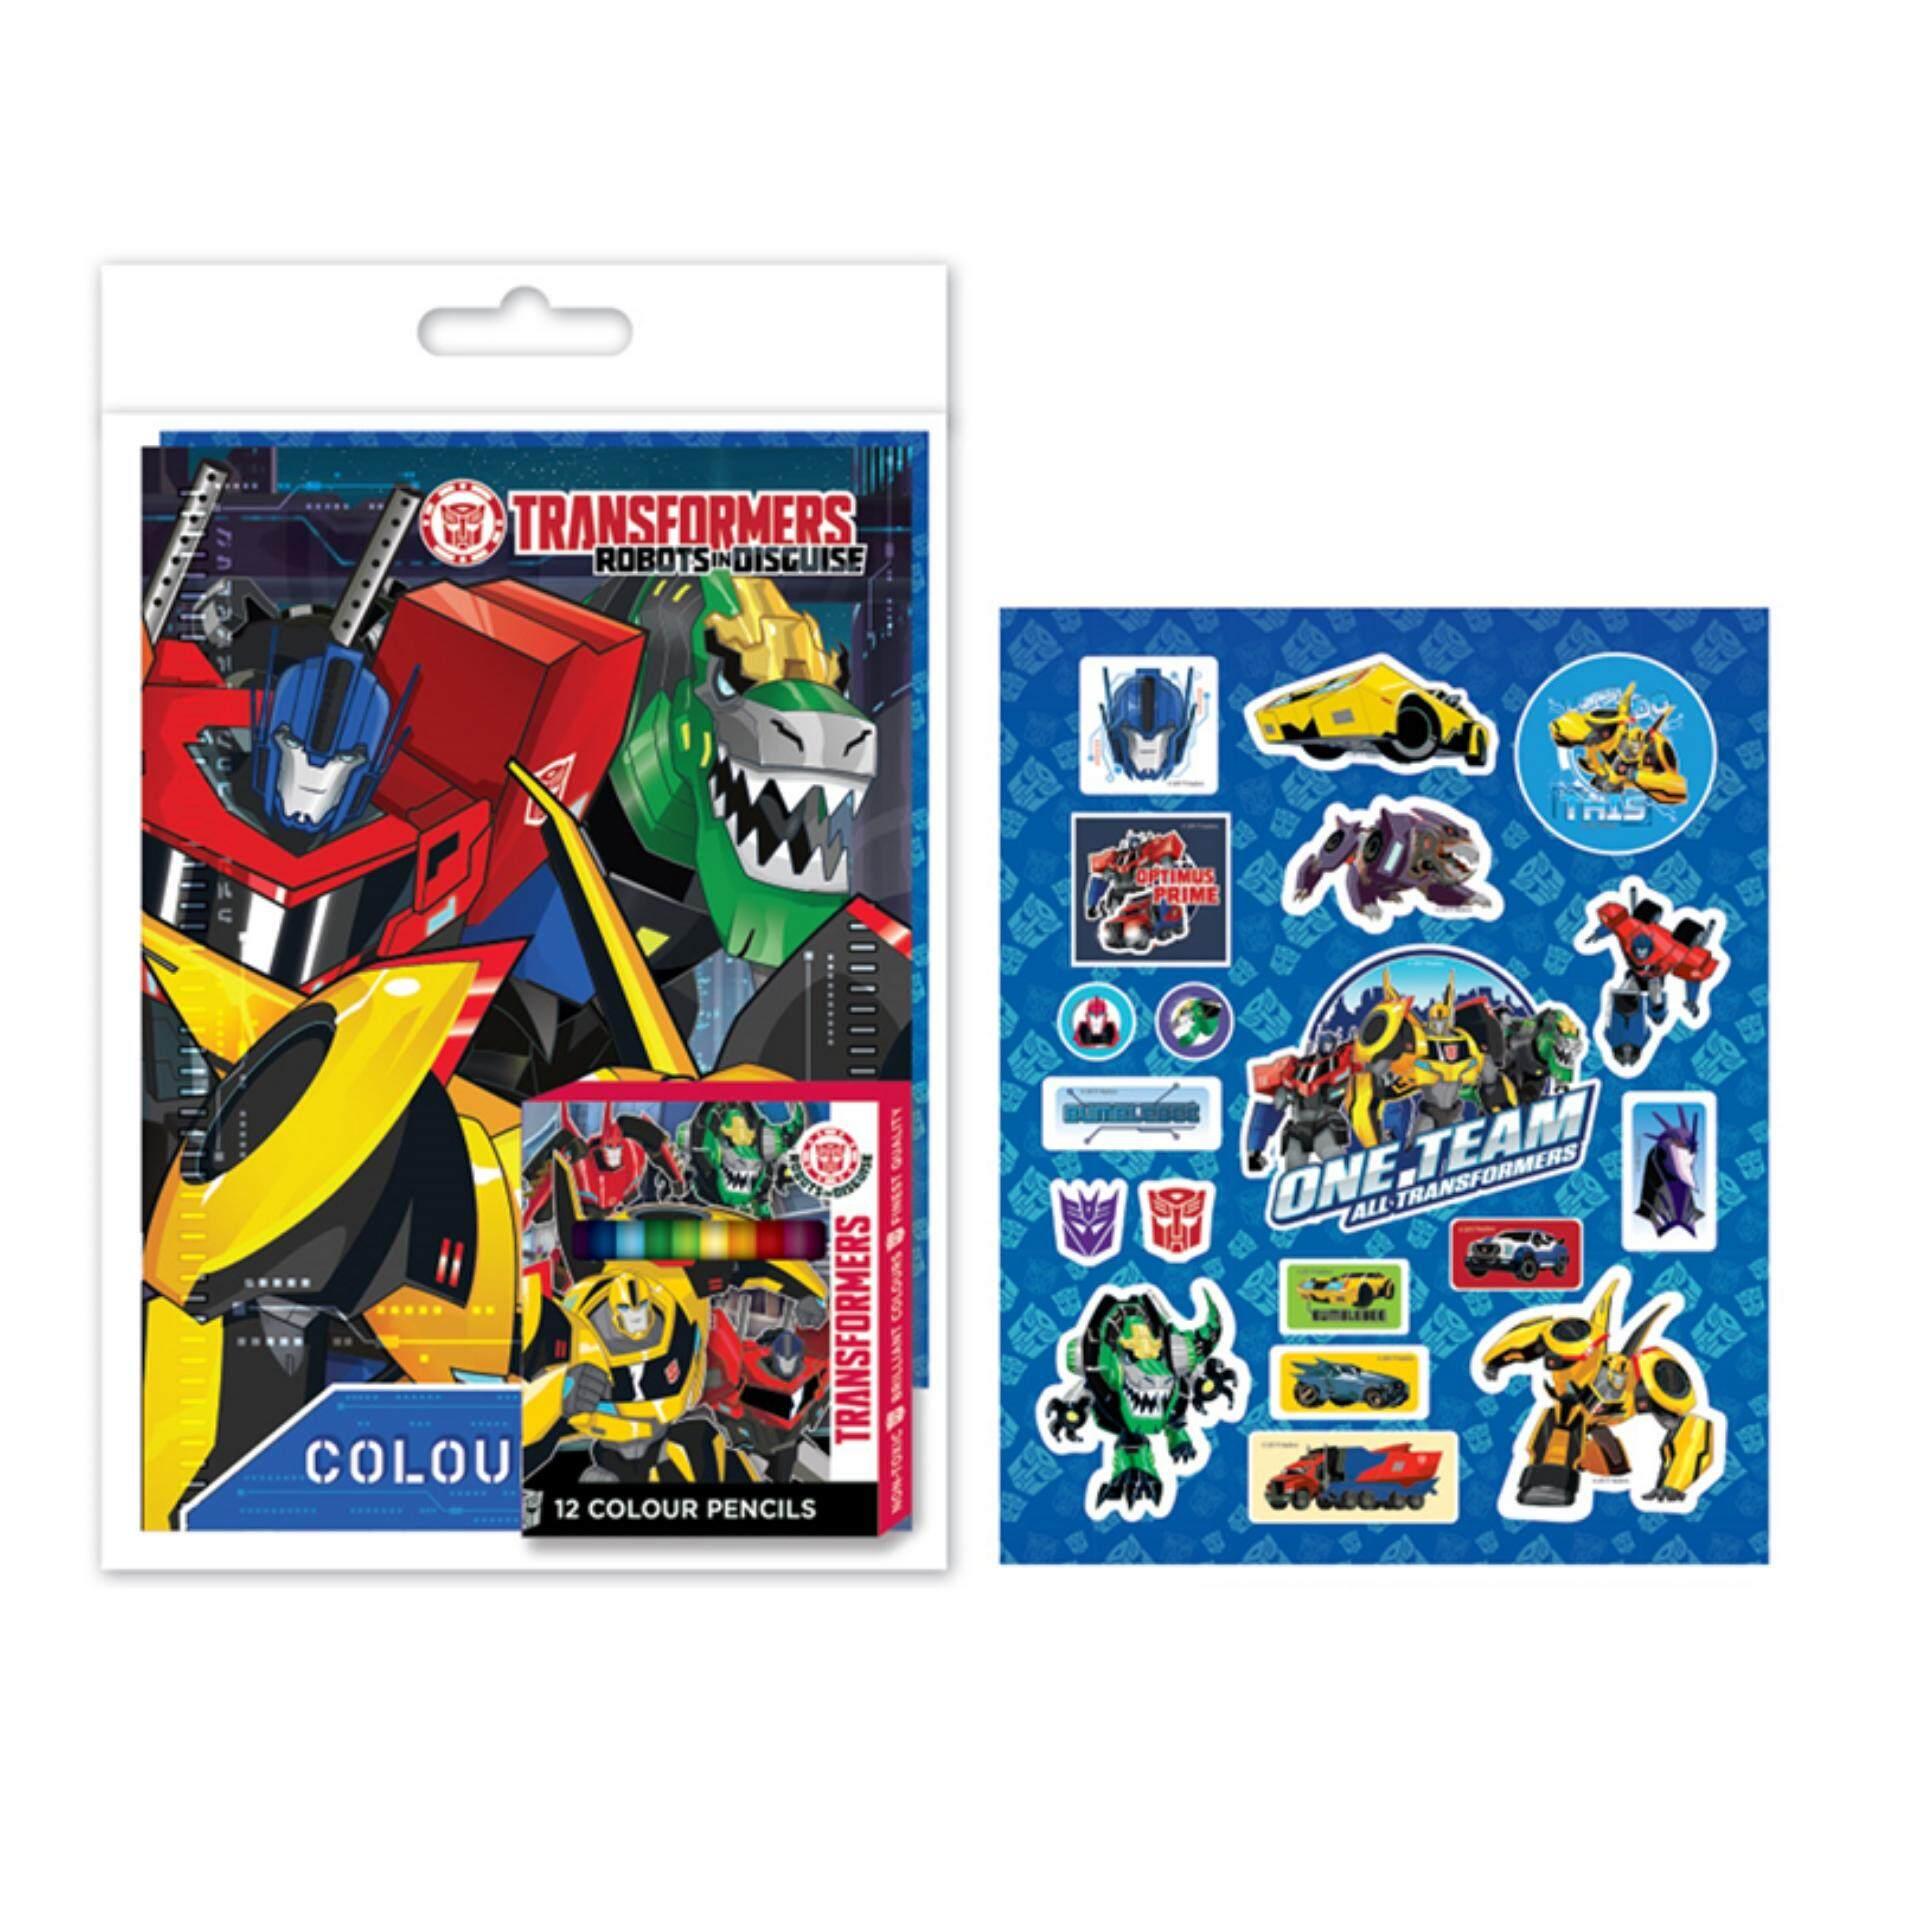 Transformers Colouring Book Set With Sticker - Dark Blue Colour